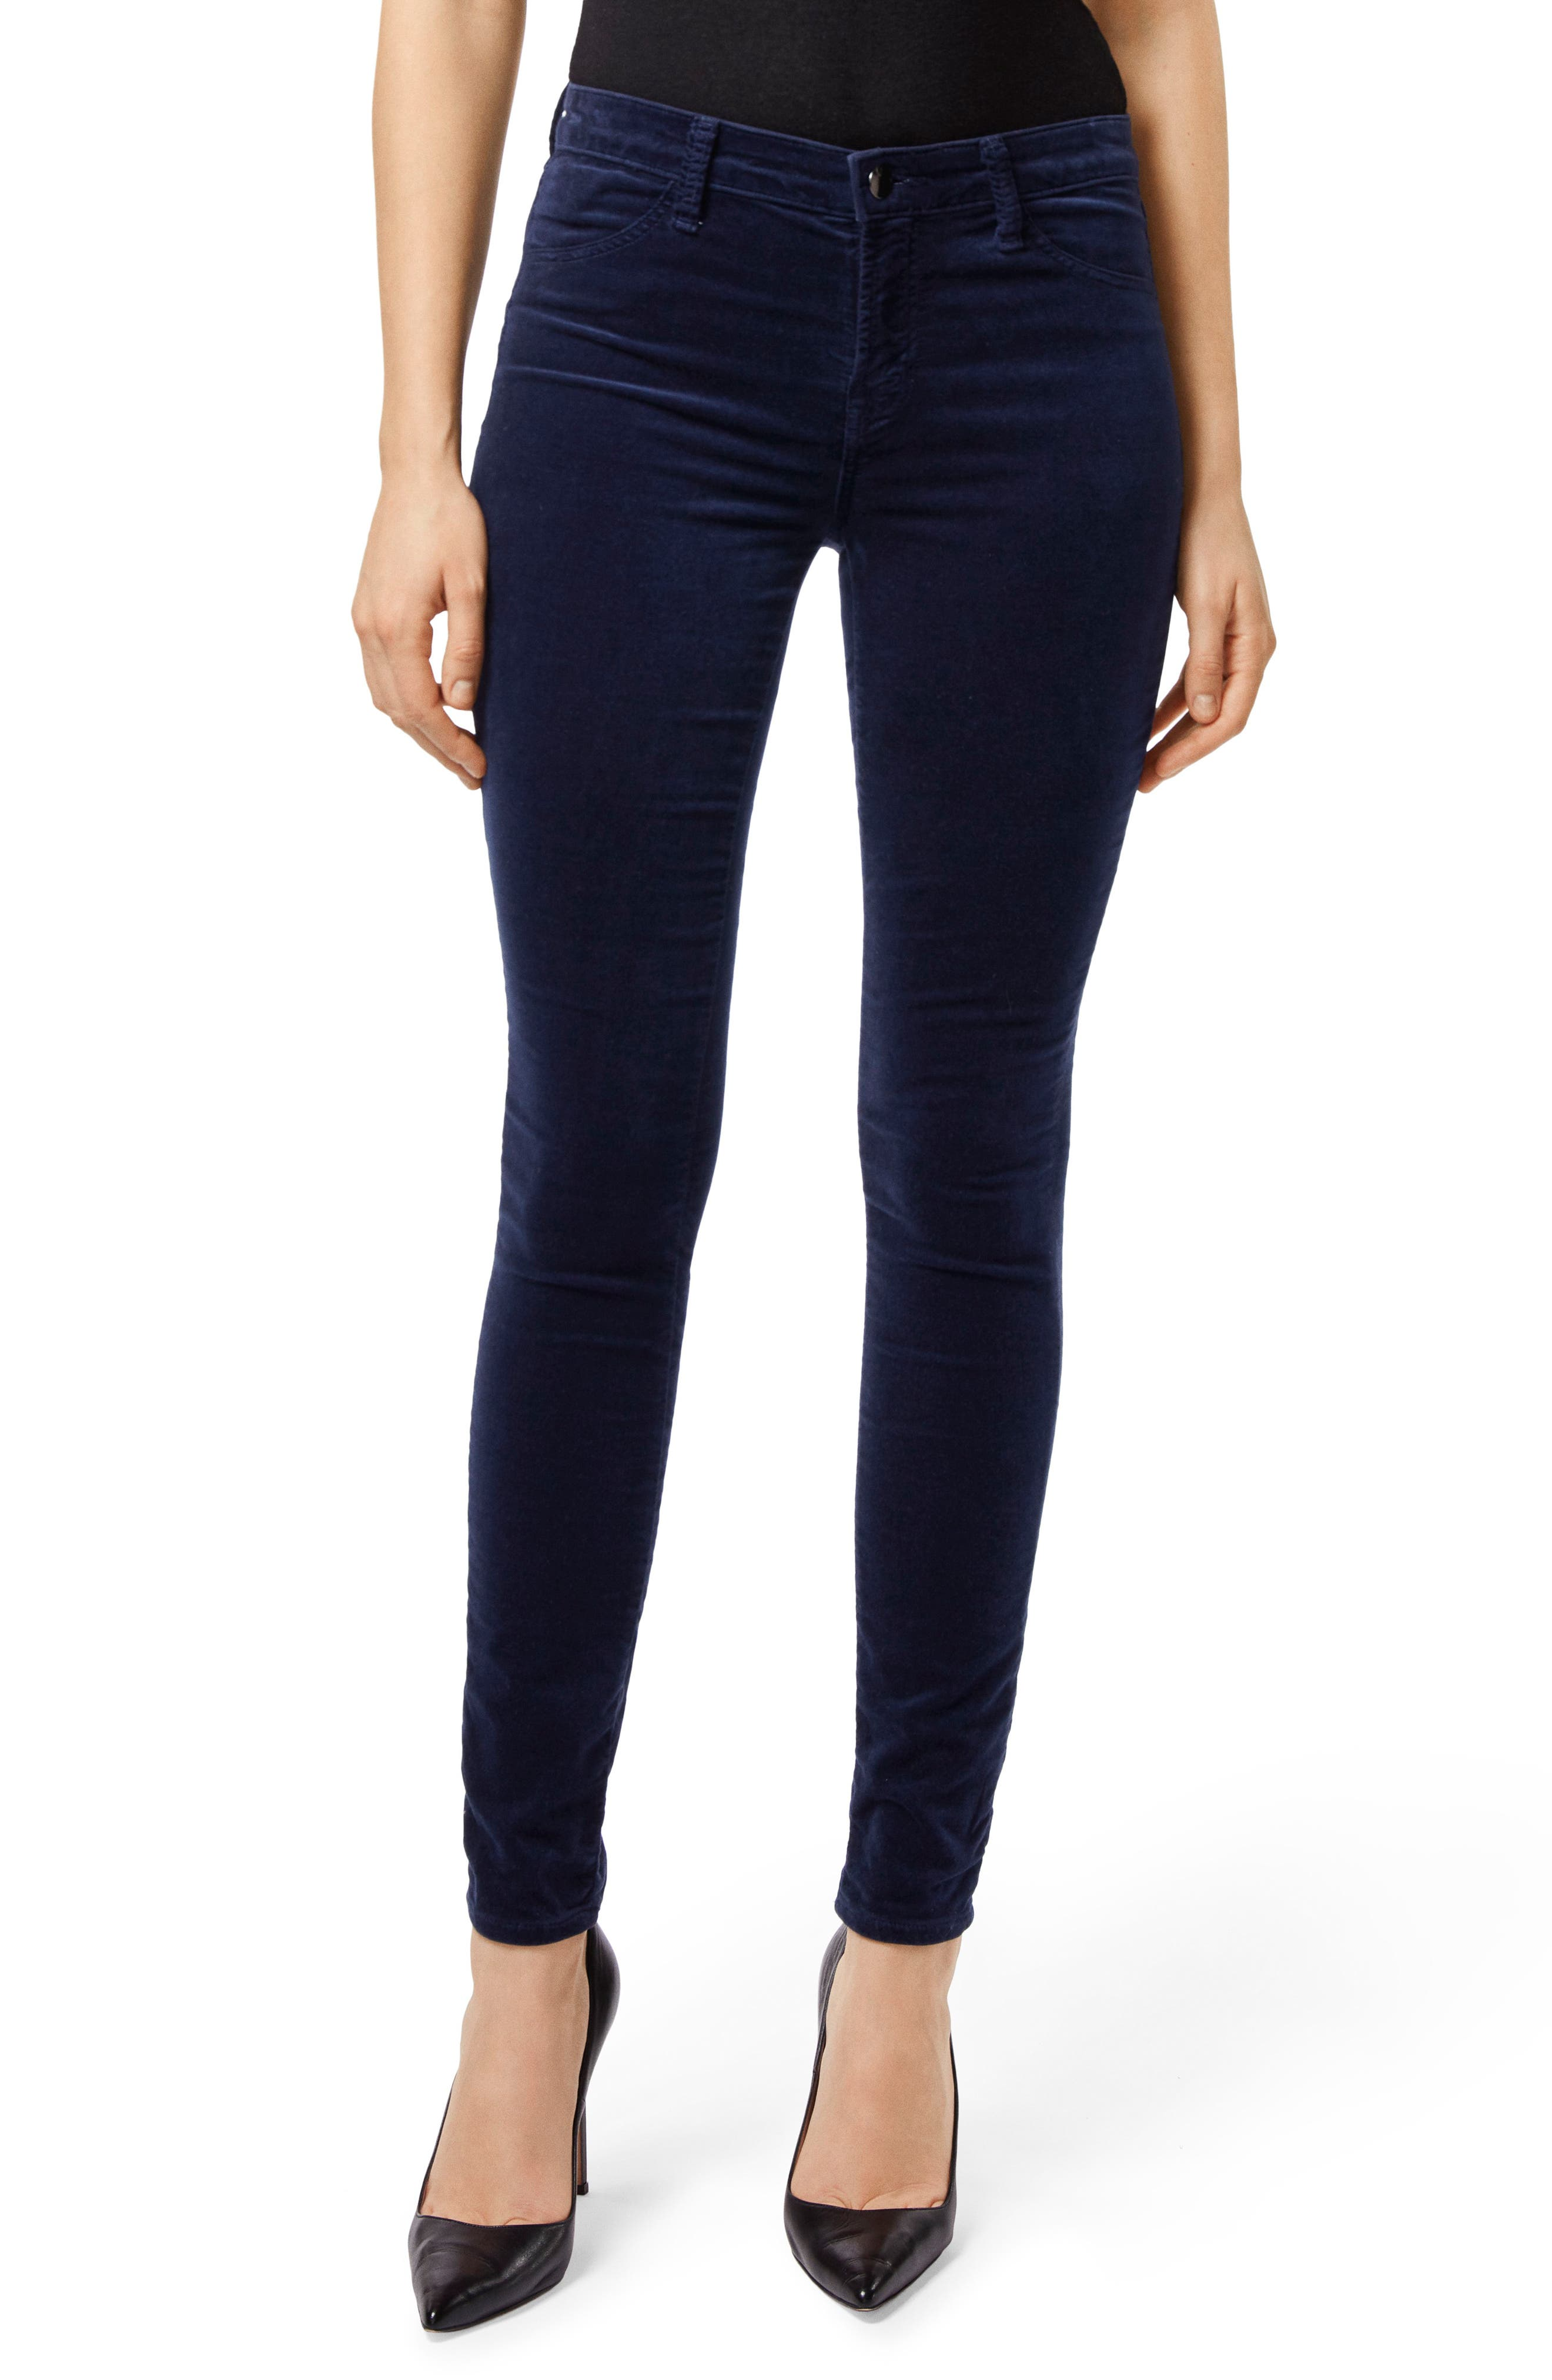 Maria High Waist Velvet Skinny Jeans,                             Main thumbnail 1, color,                             NIGHT OUT